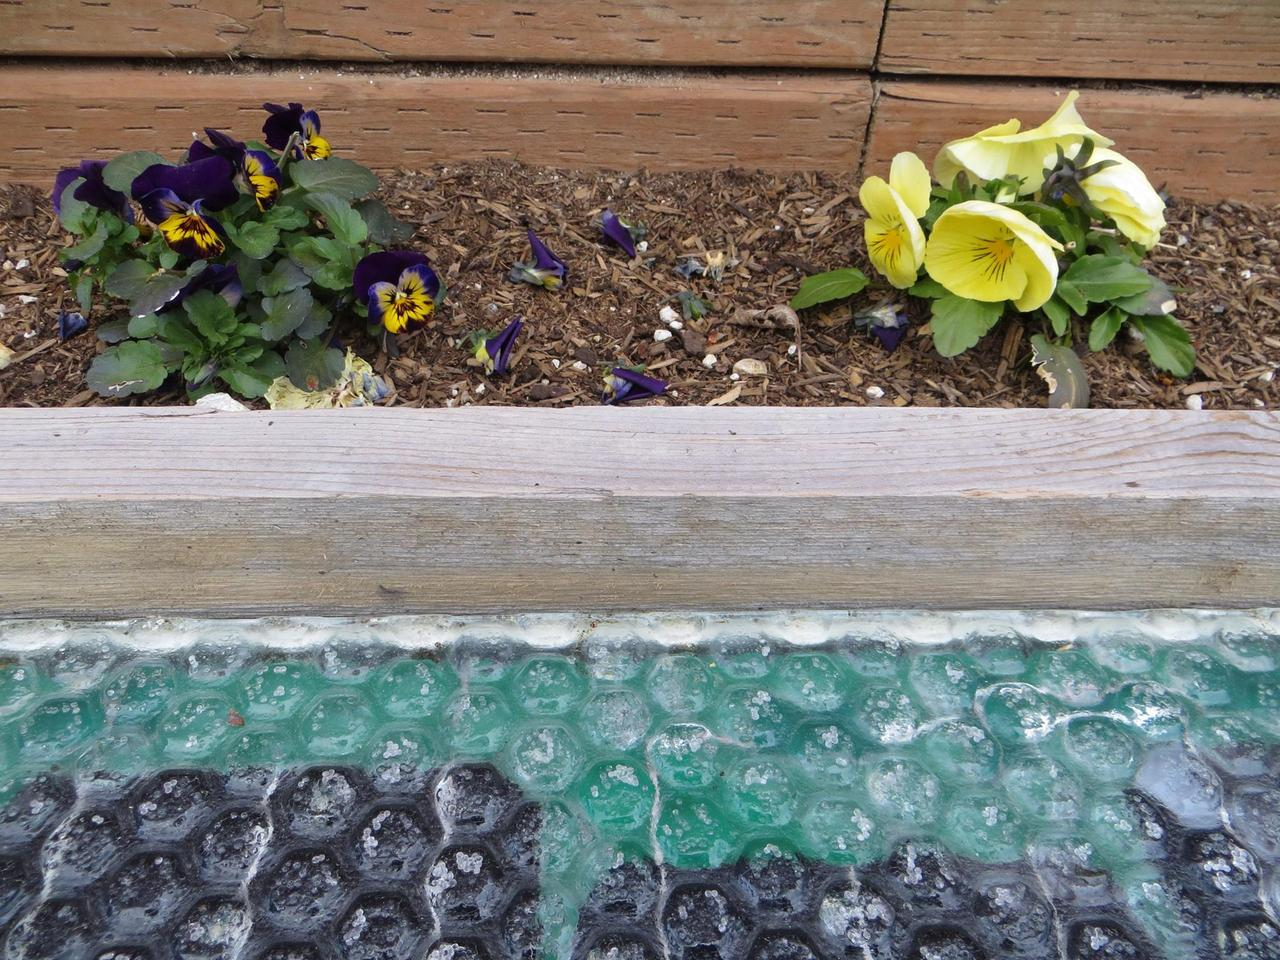 Close up of the Solar Roadways parking lot shows the detail of the toughened glass surface